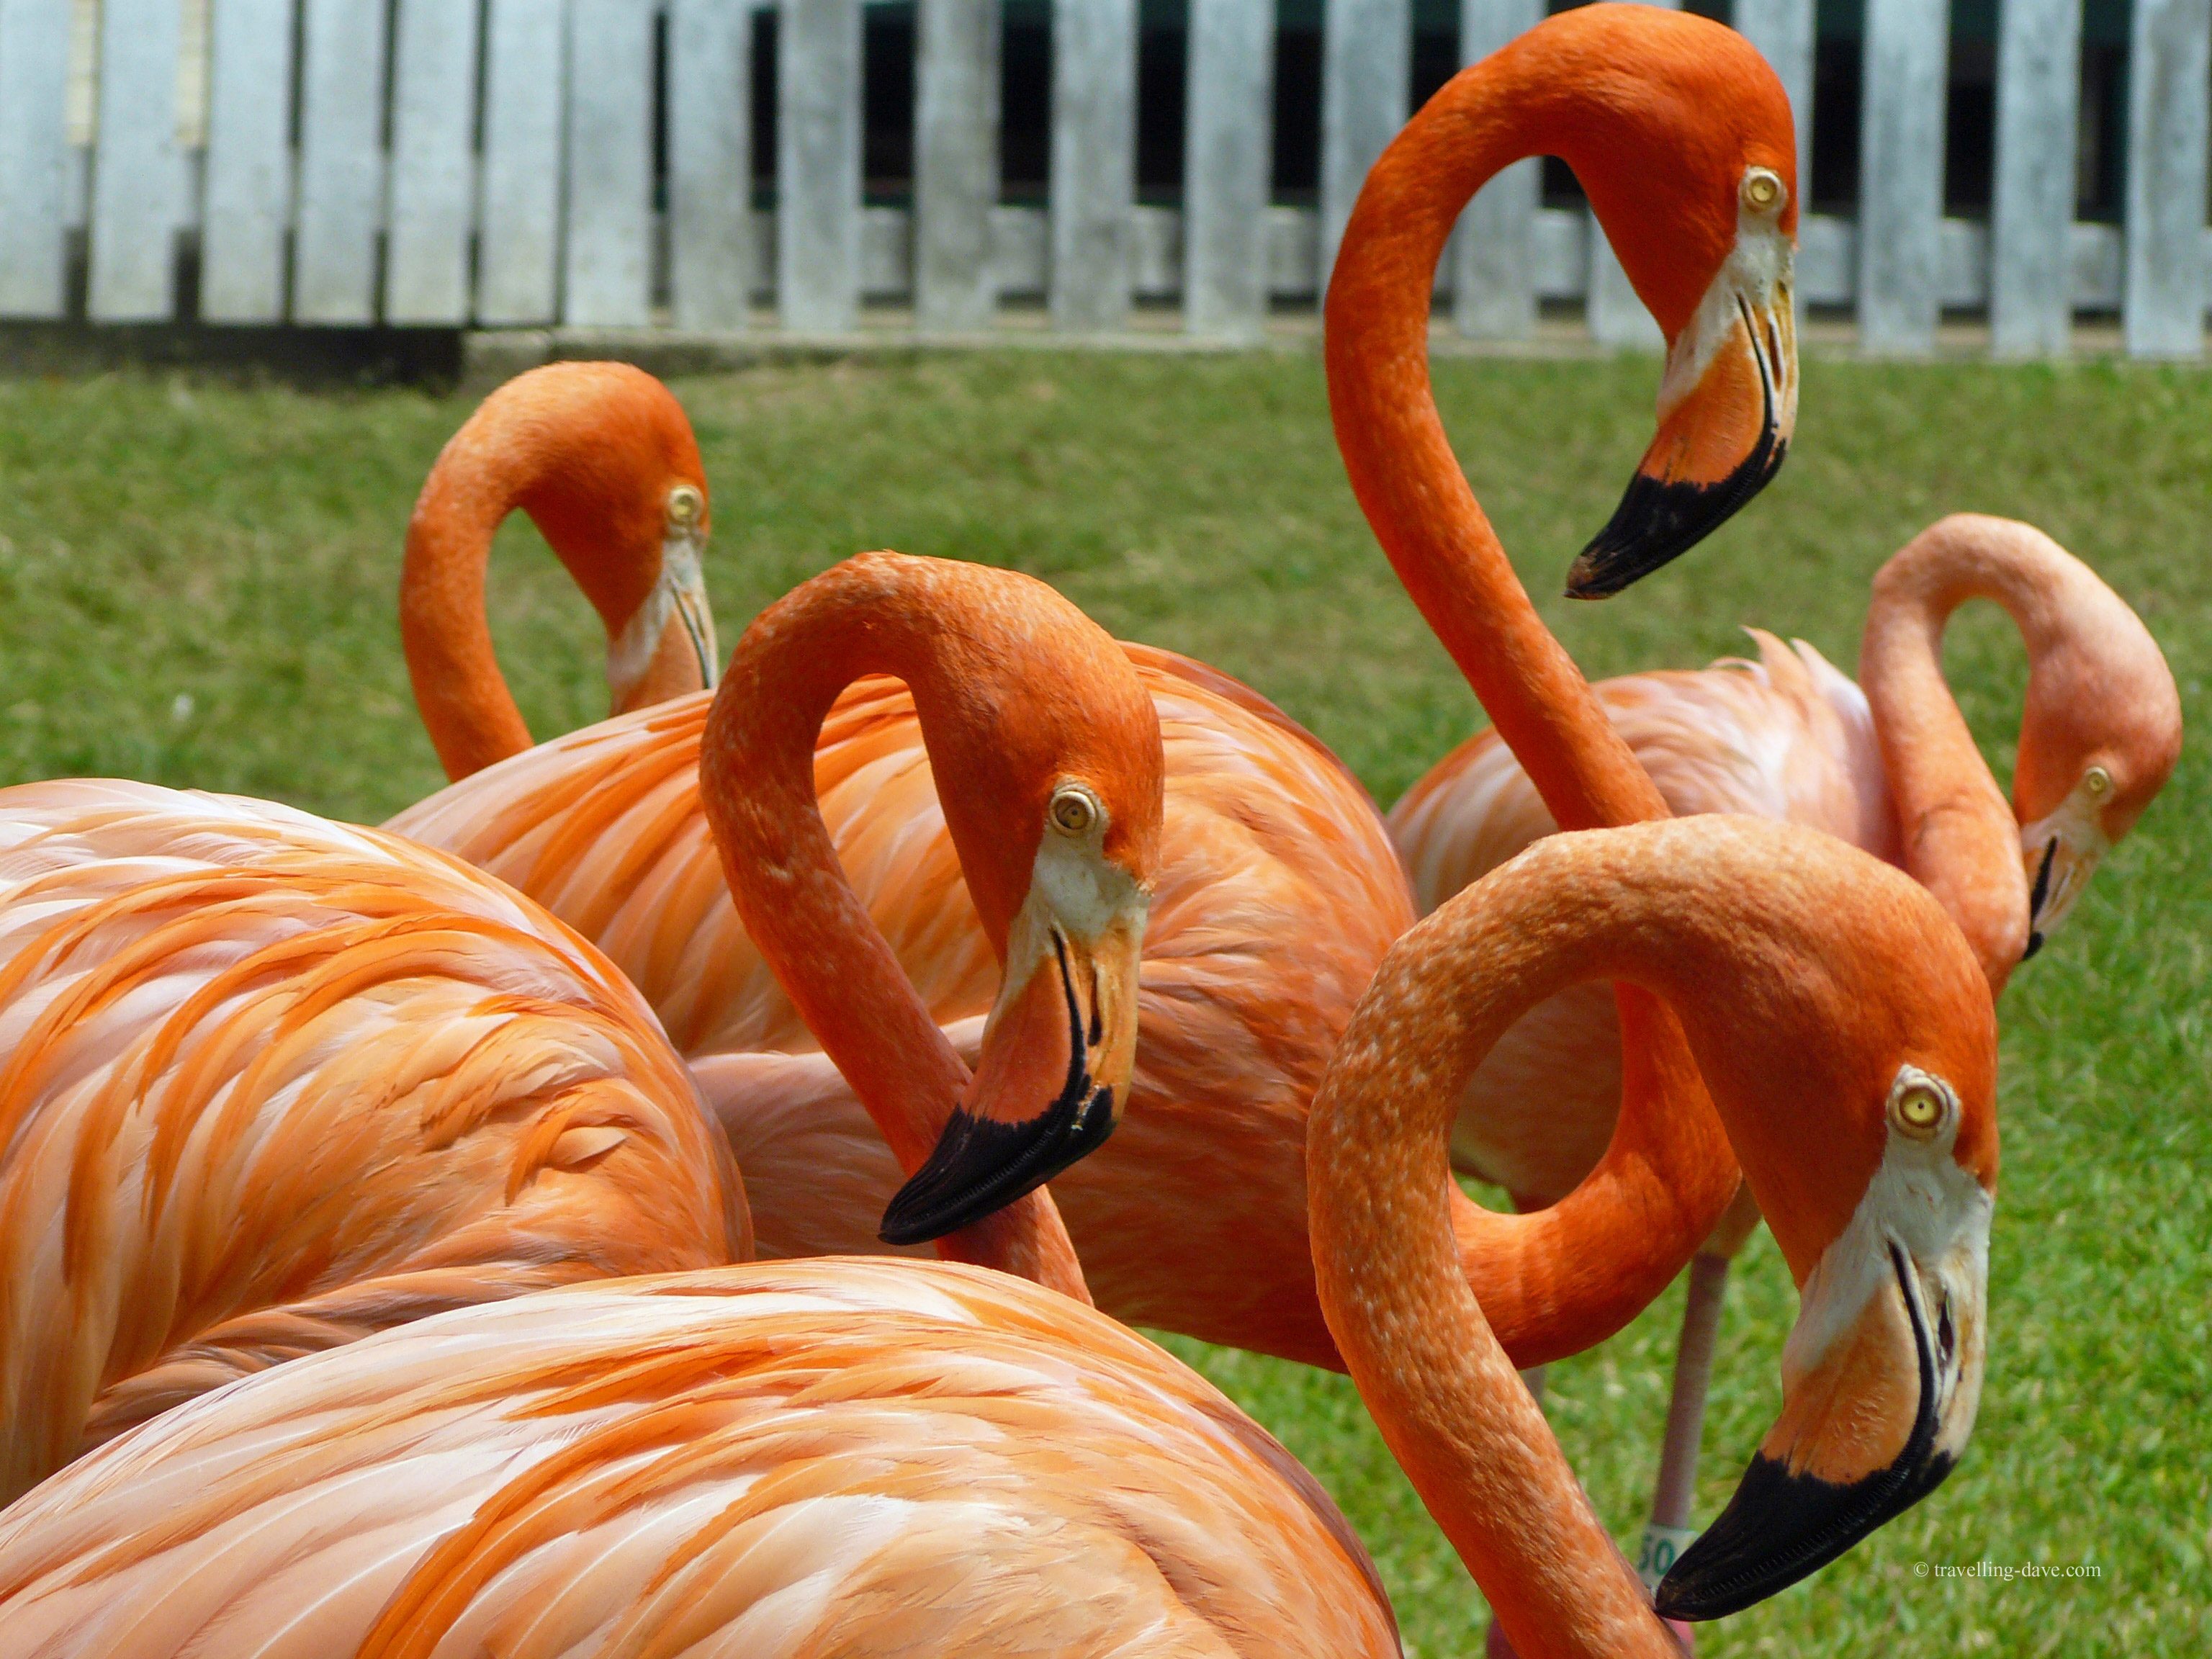 The famous marching flamingo of Ardastra Gardens in Nassau, Bahamas